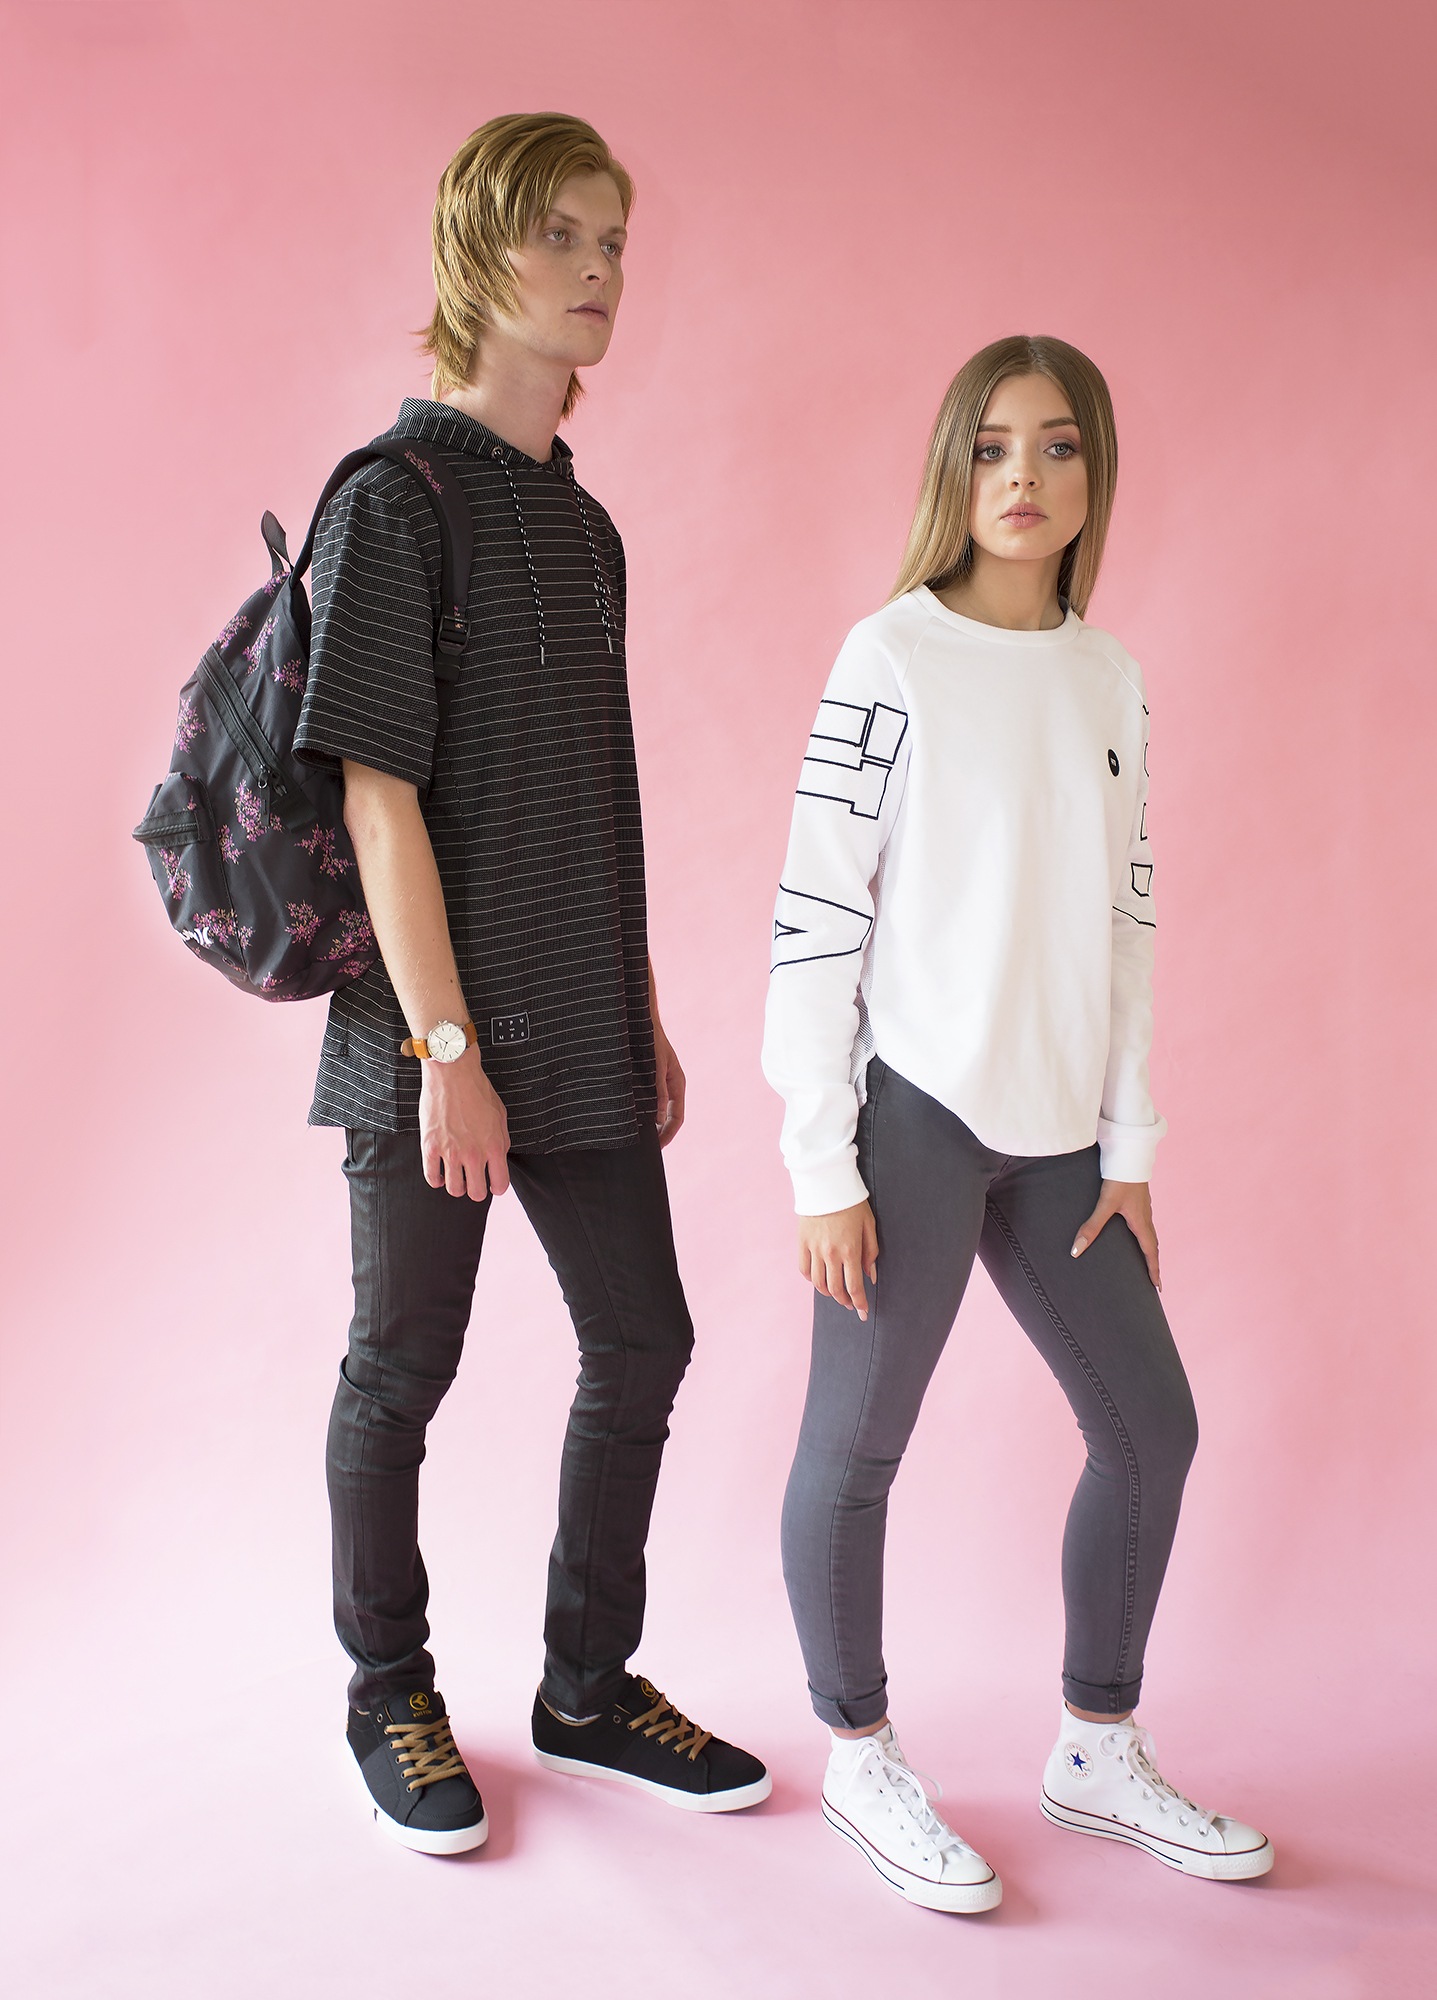 Jesse and Tegan are dressed in Amazon clothing (including footwear and accessories)